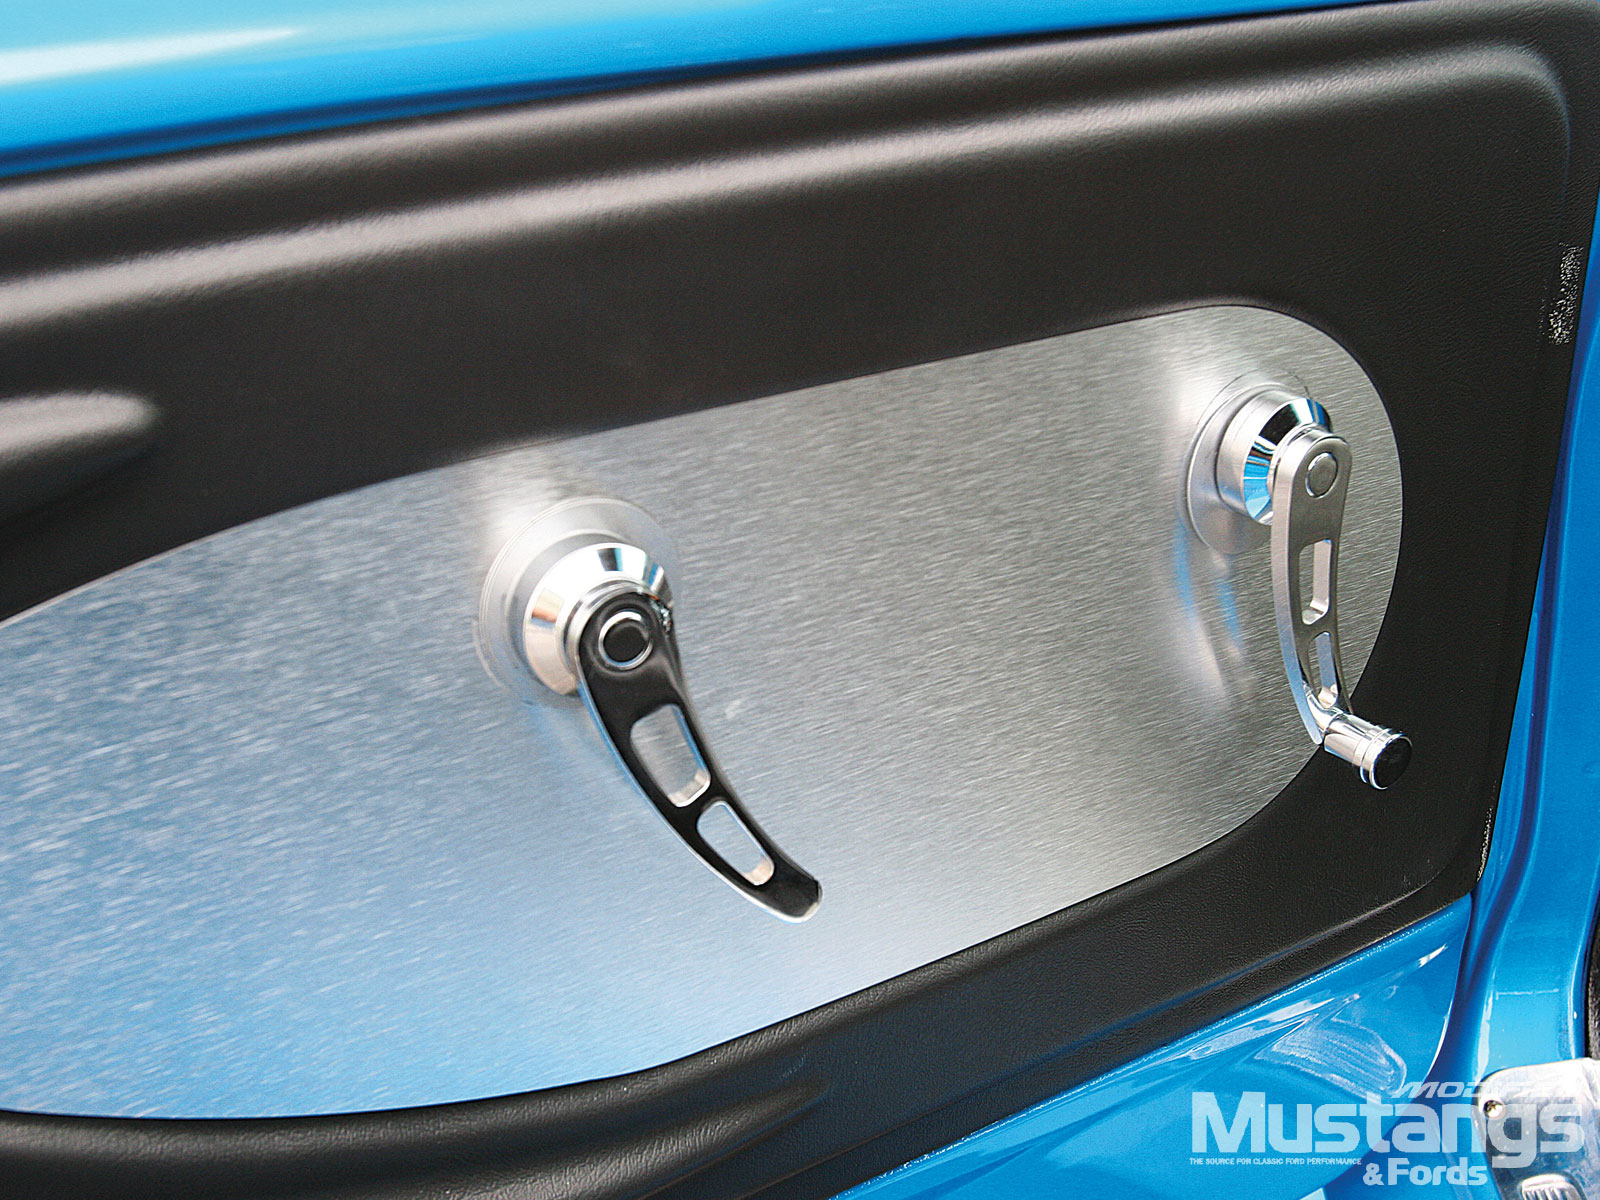 1965 Mustang Fastback Power Windows Handles